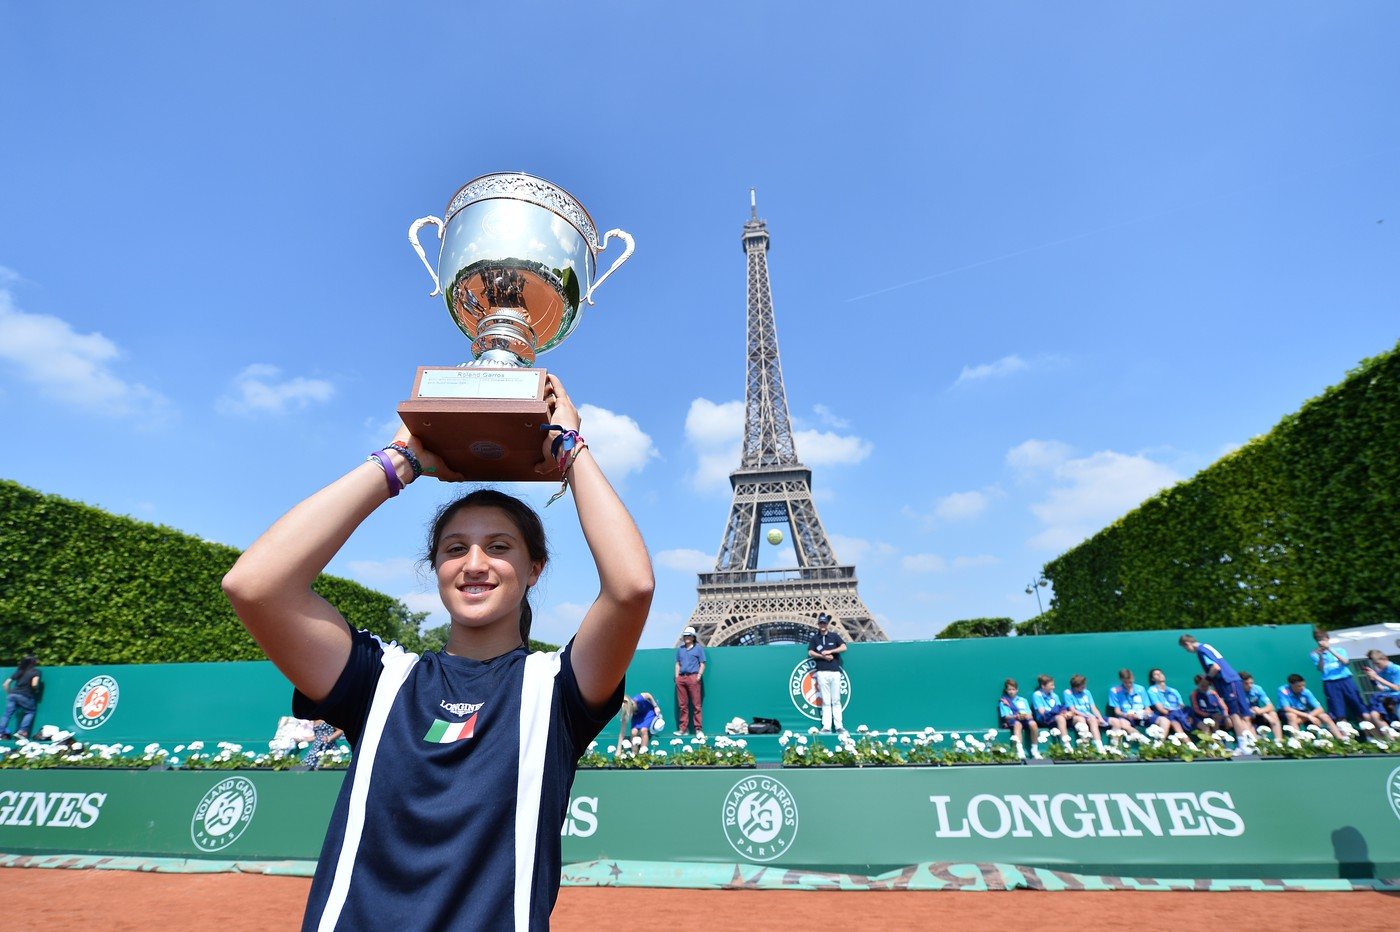 Longines  Event: Longines Future Tennis Aces 2015: a meeting of talented young players in the heart of Paris 7